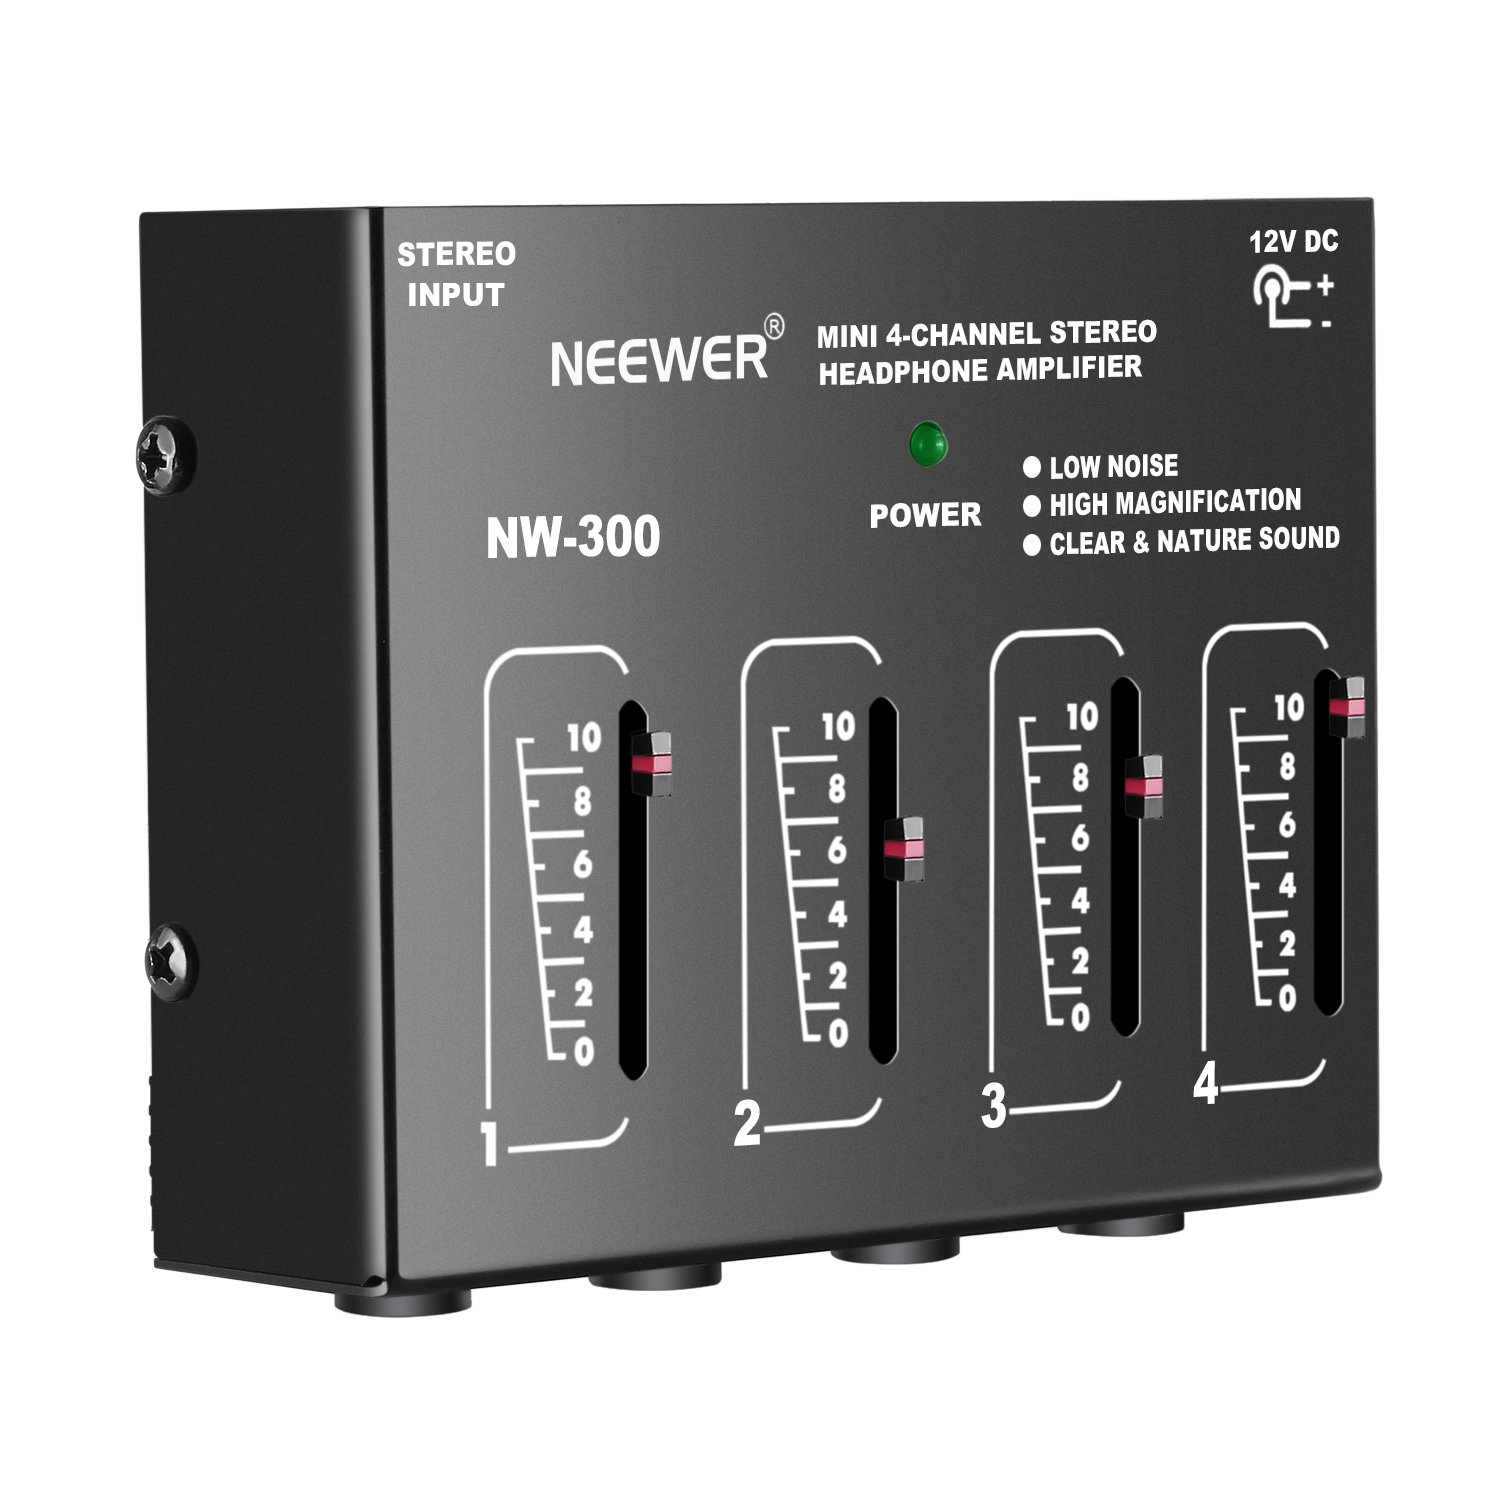 Neewer Compact 4-Channel Stereo Headphone Amplifier with DC 12V Adapter for Sound Reinforcement, Studio, Choir and Personal Recording Neewer® 40088067@@1